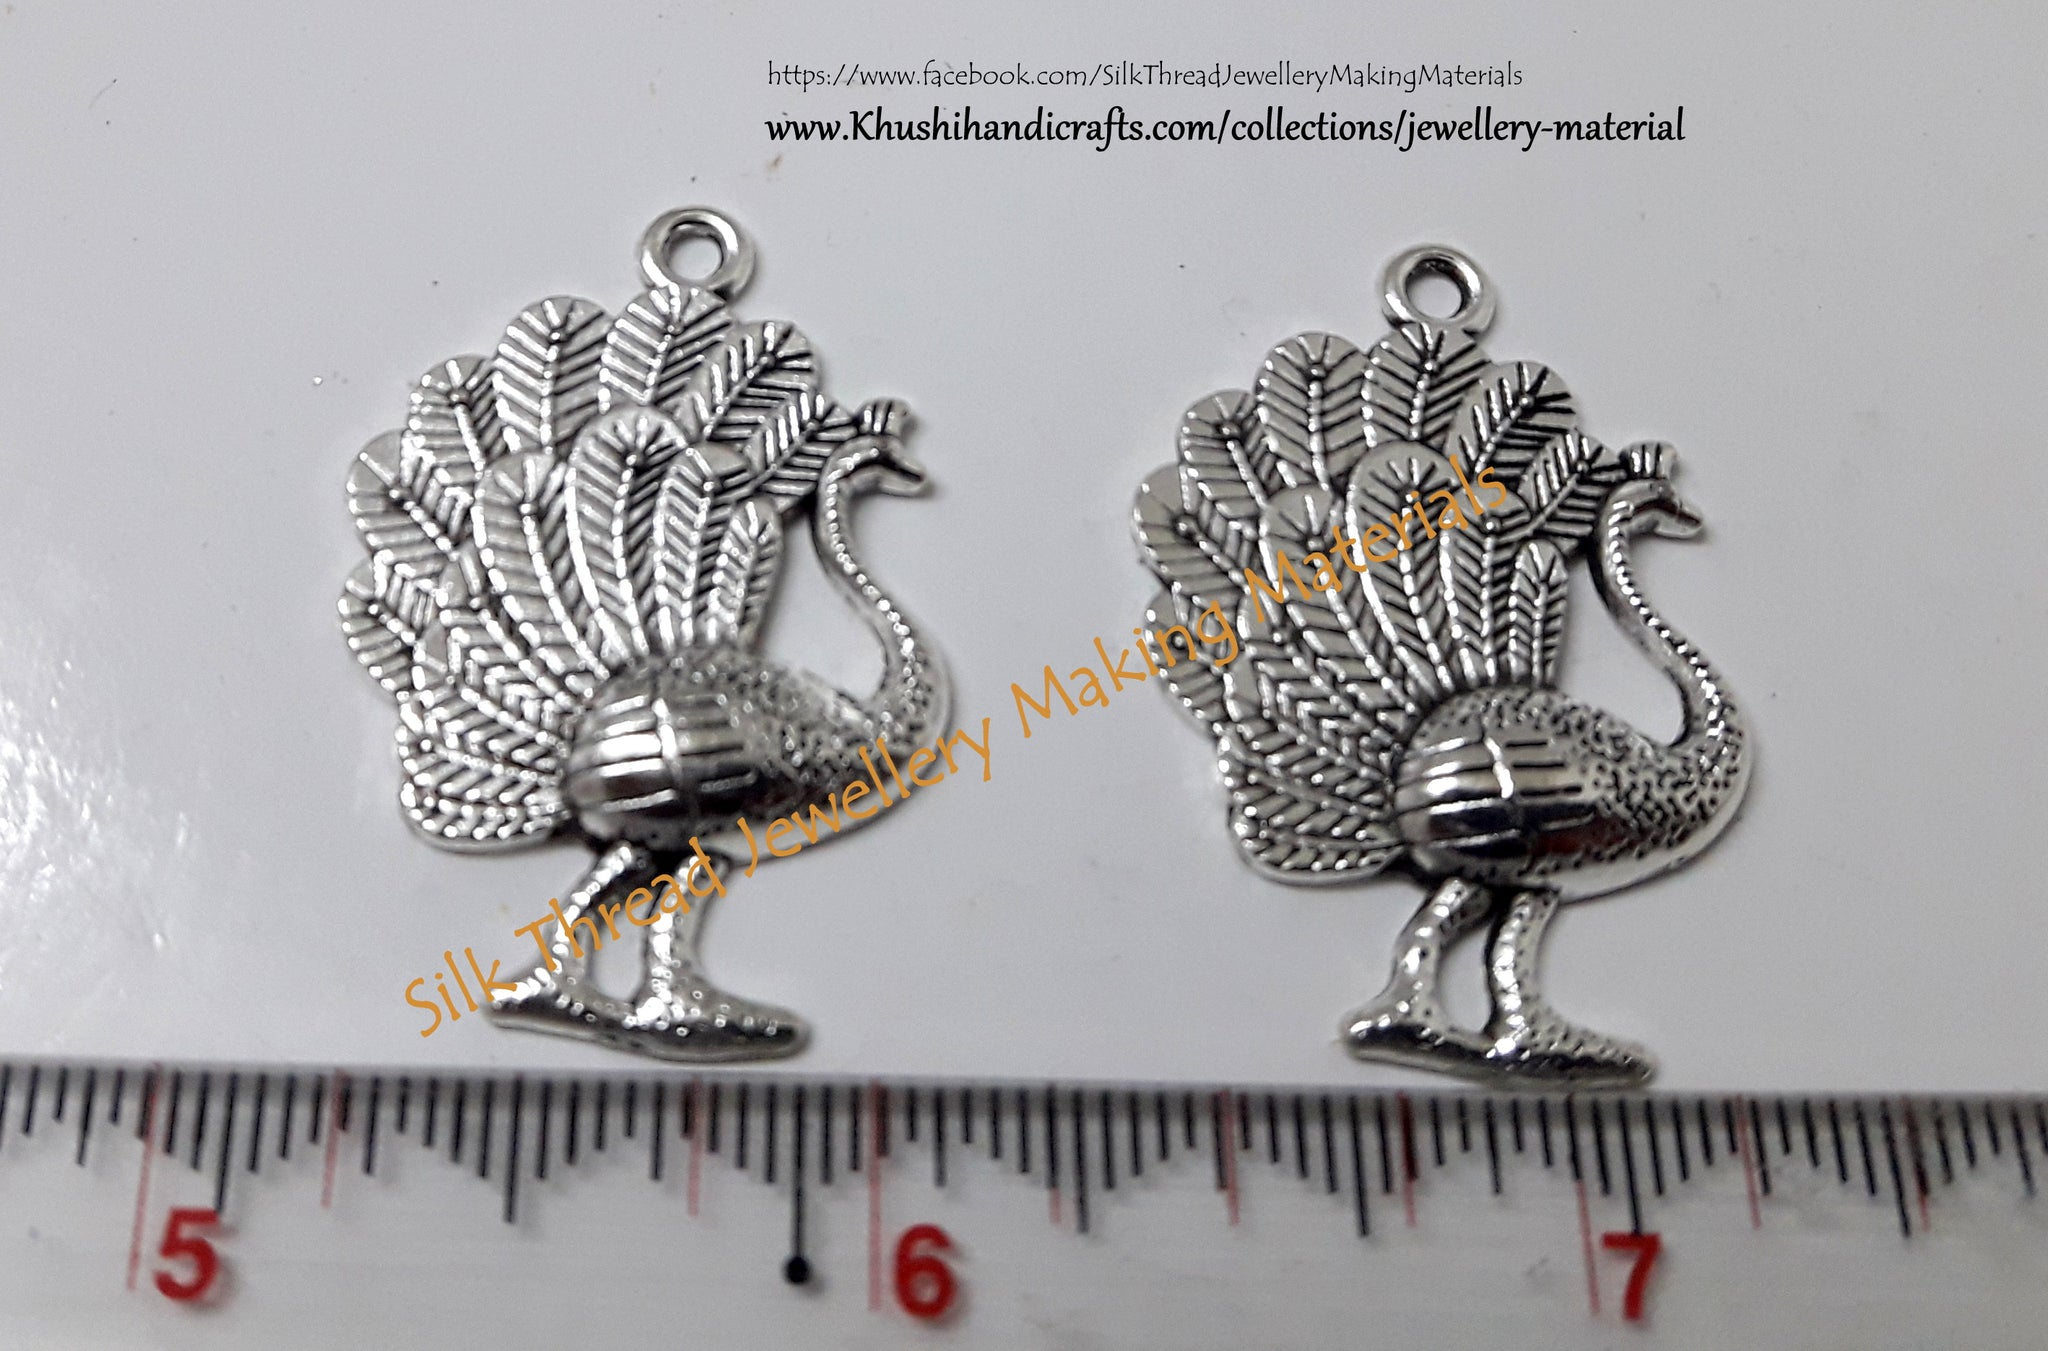 German Silver Peacock Charms.10 pieces included!!P010